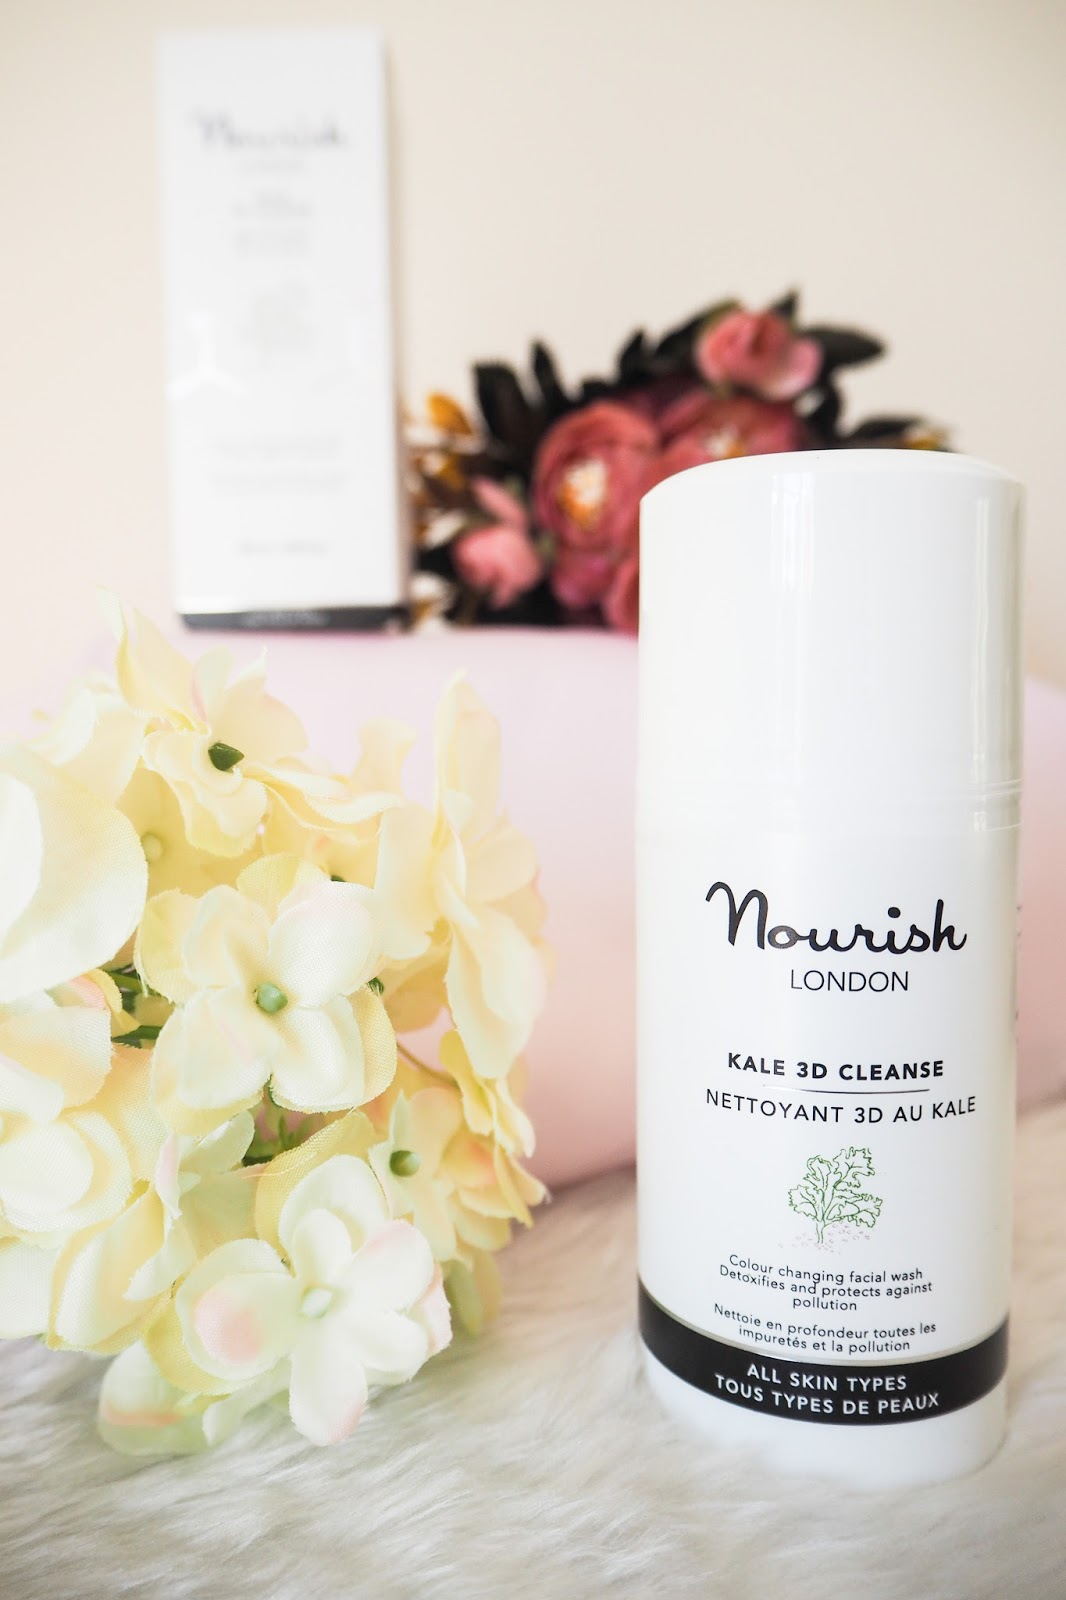 Review of the Nourish Kale 3D Cleanse